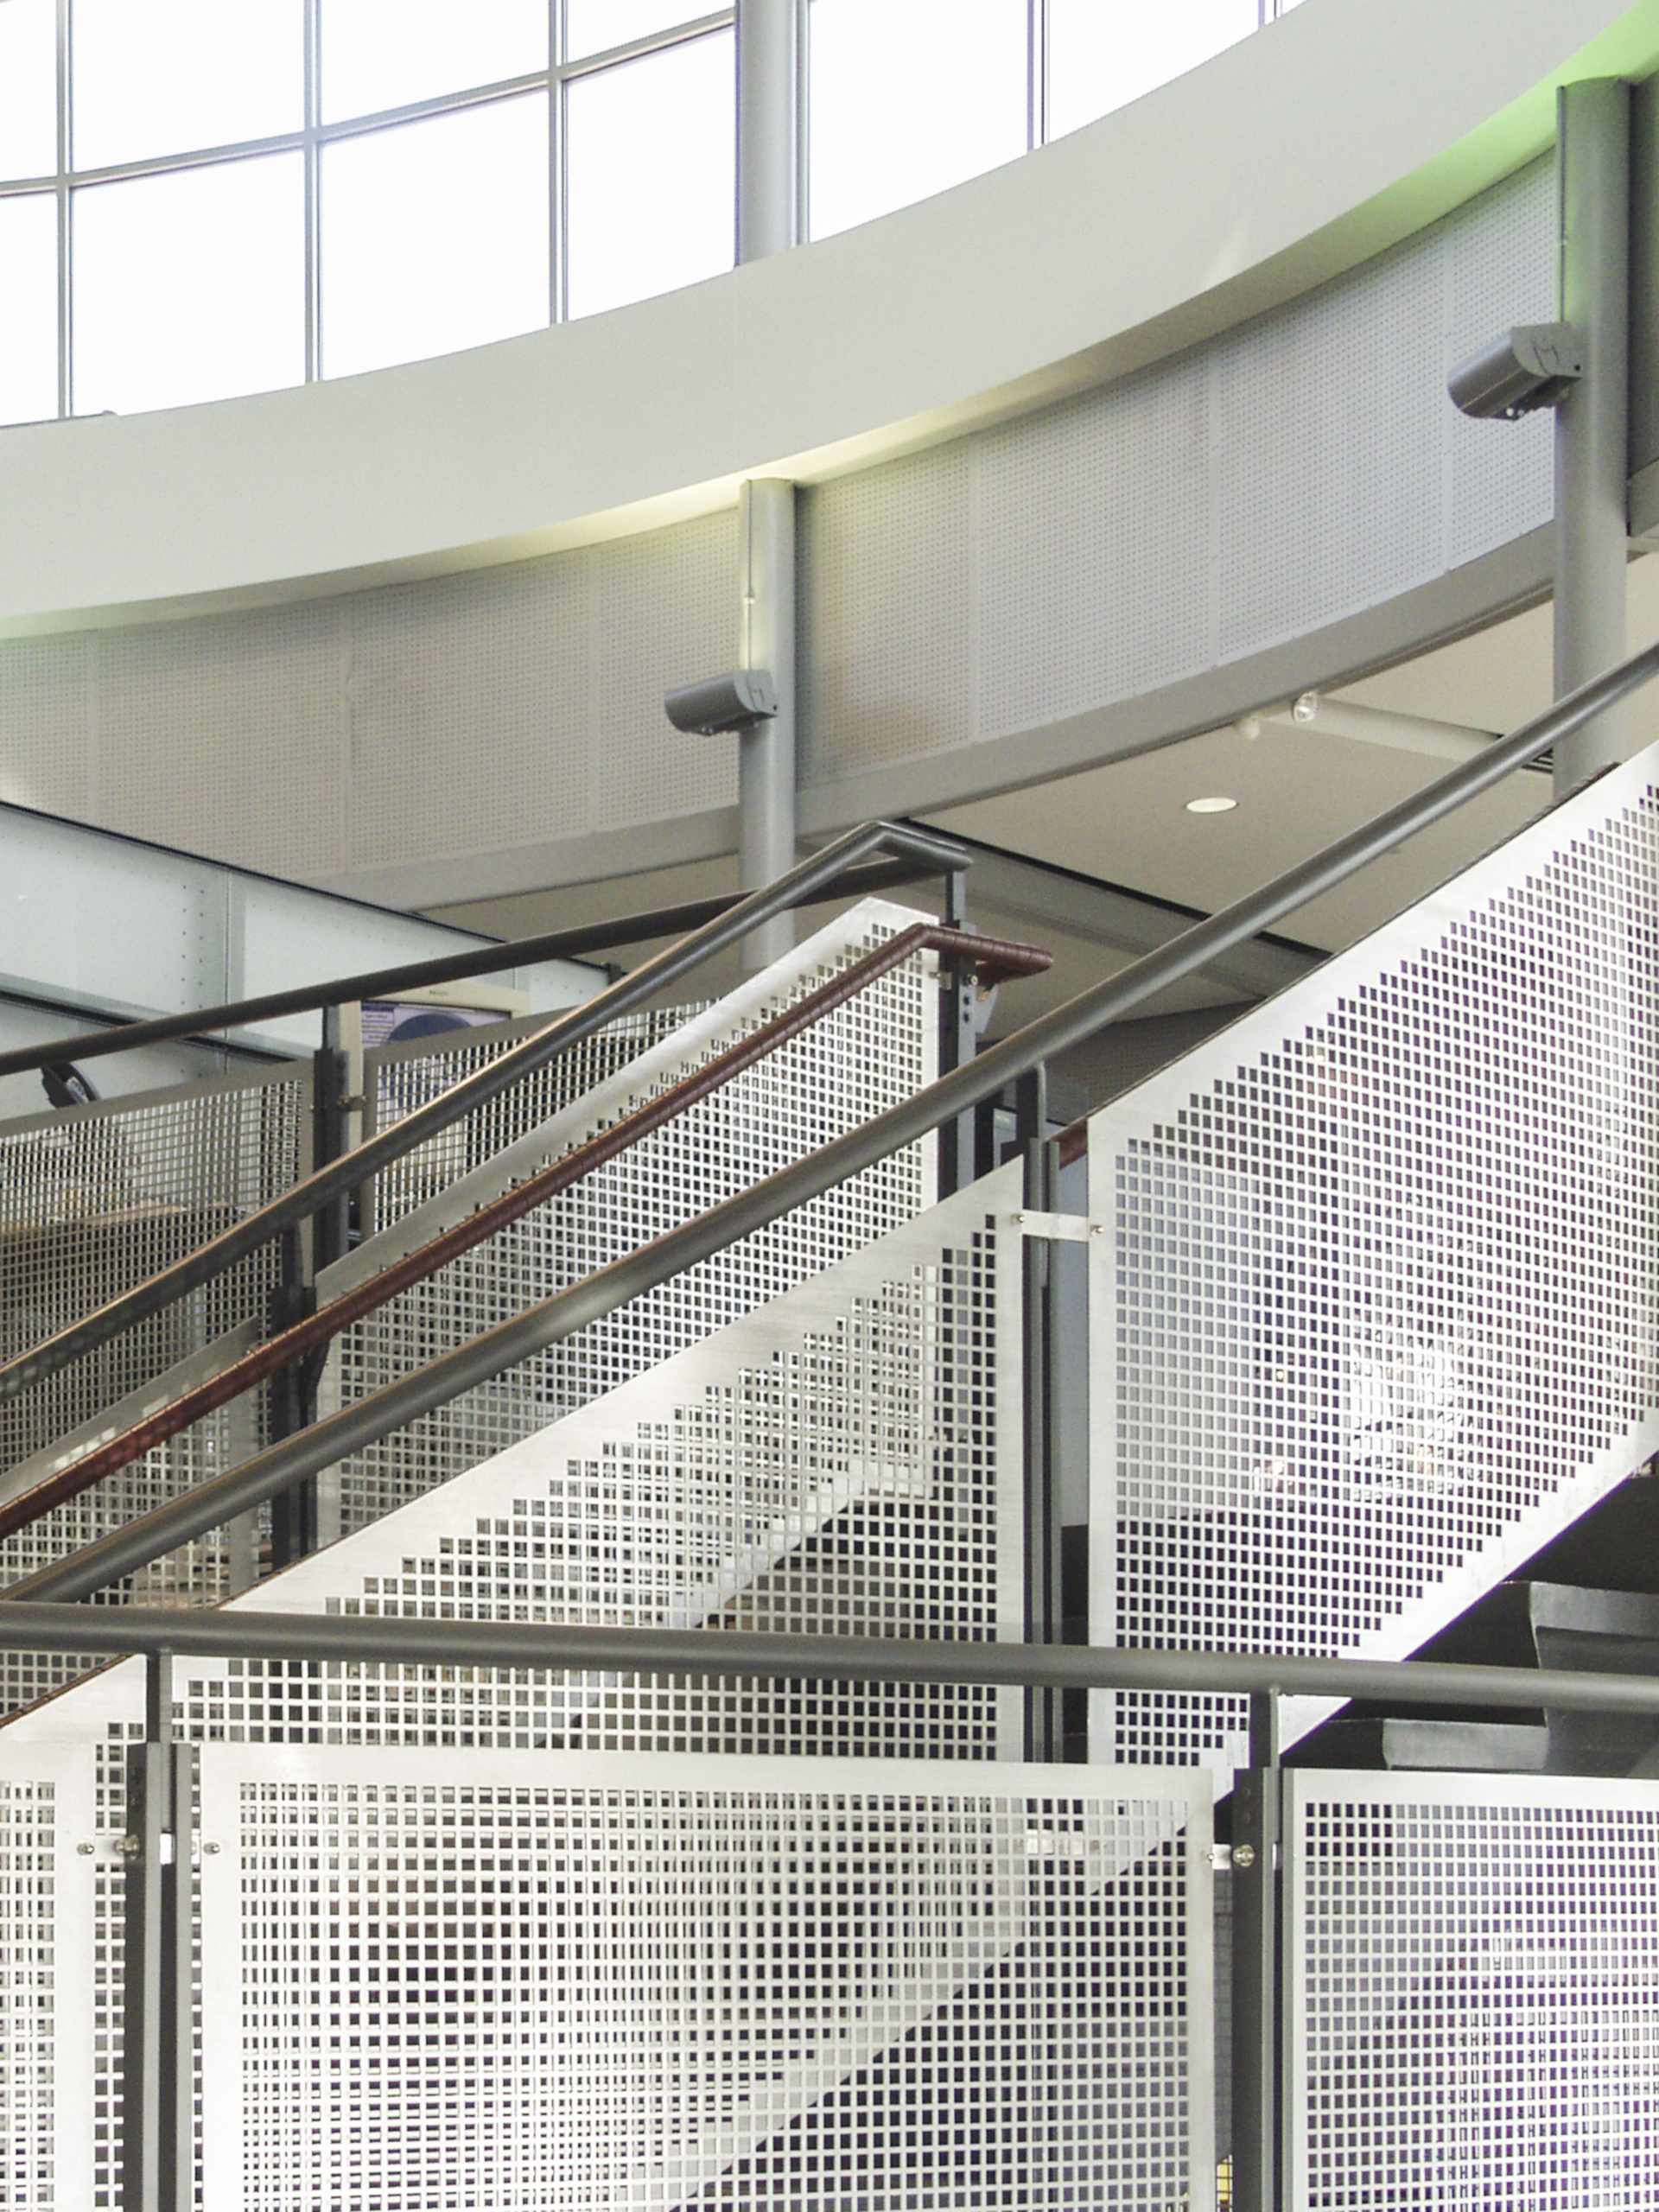 Custom guardrail screens in perforated aluminum